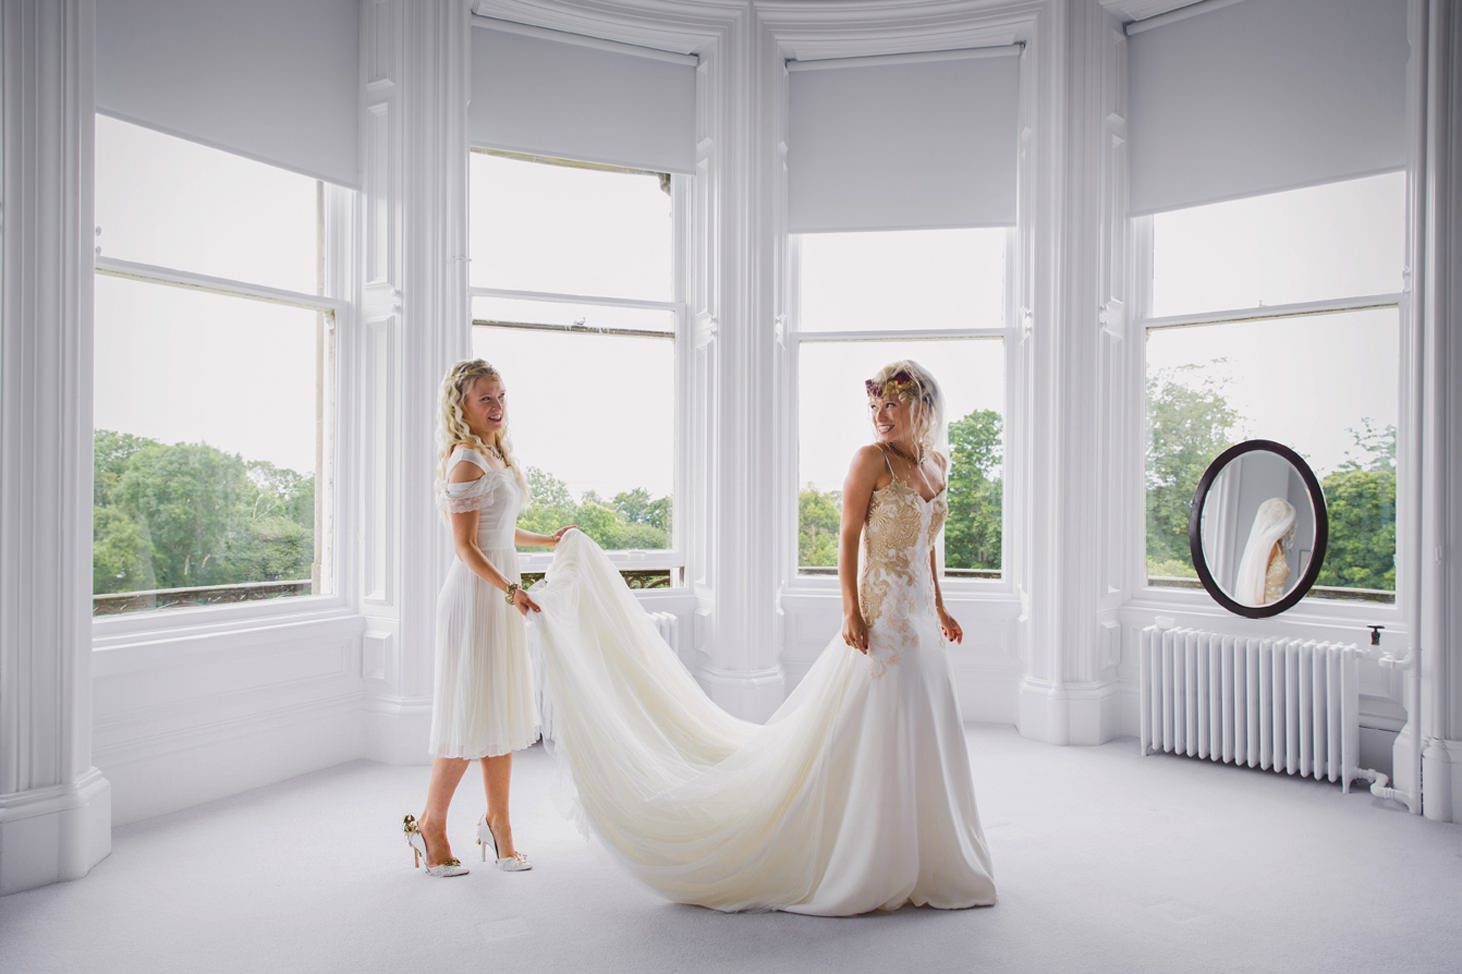 mount stuart wedding photography bride and bridesmaid with dress